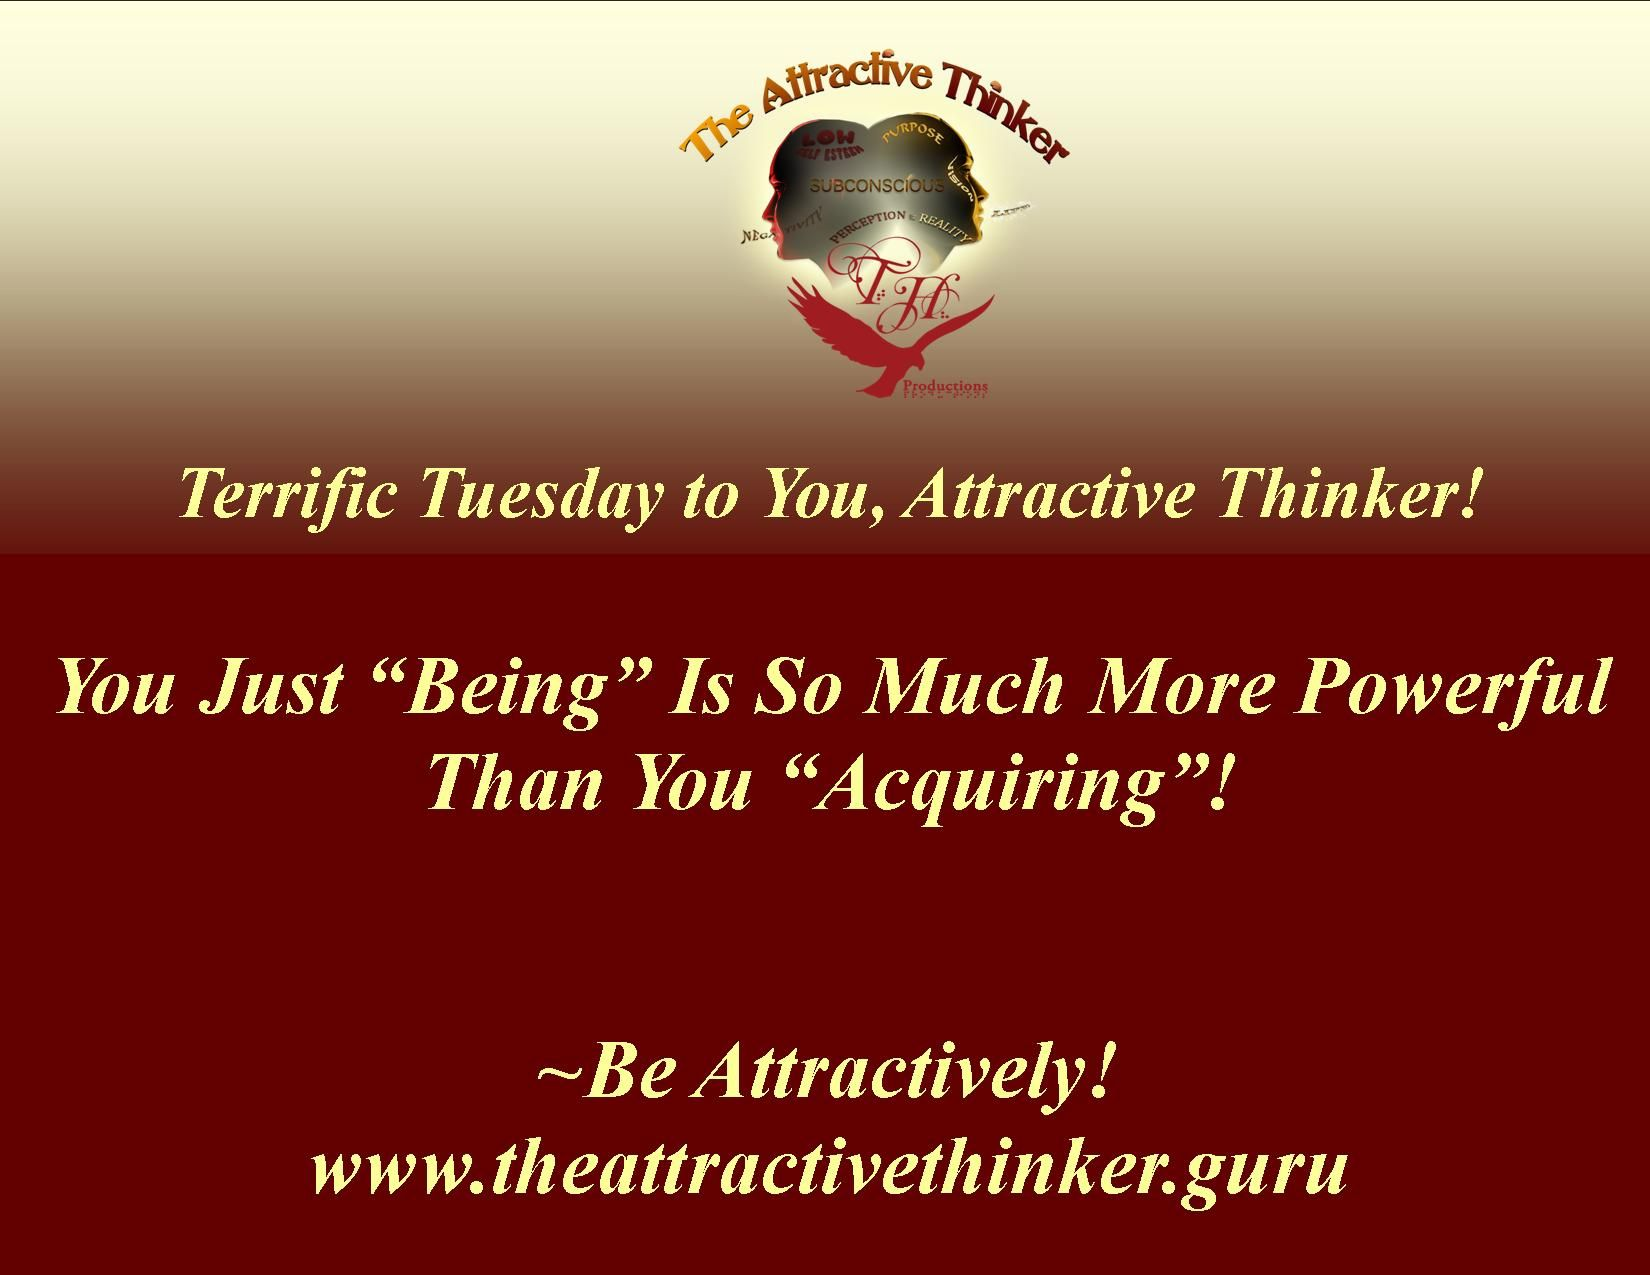 Great Day, Attractive Thinker! It Is a Great Day To Be